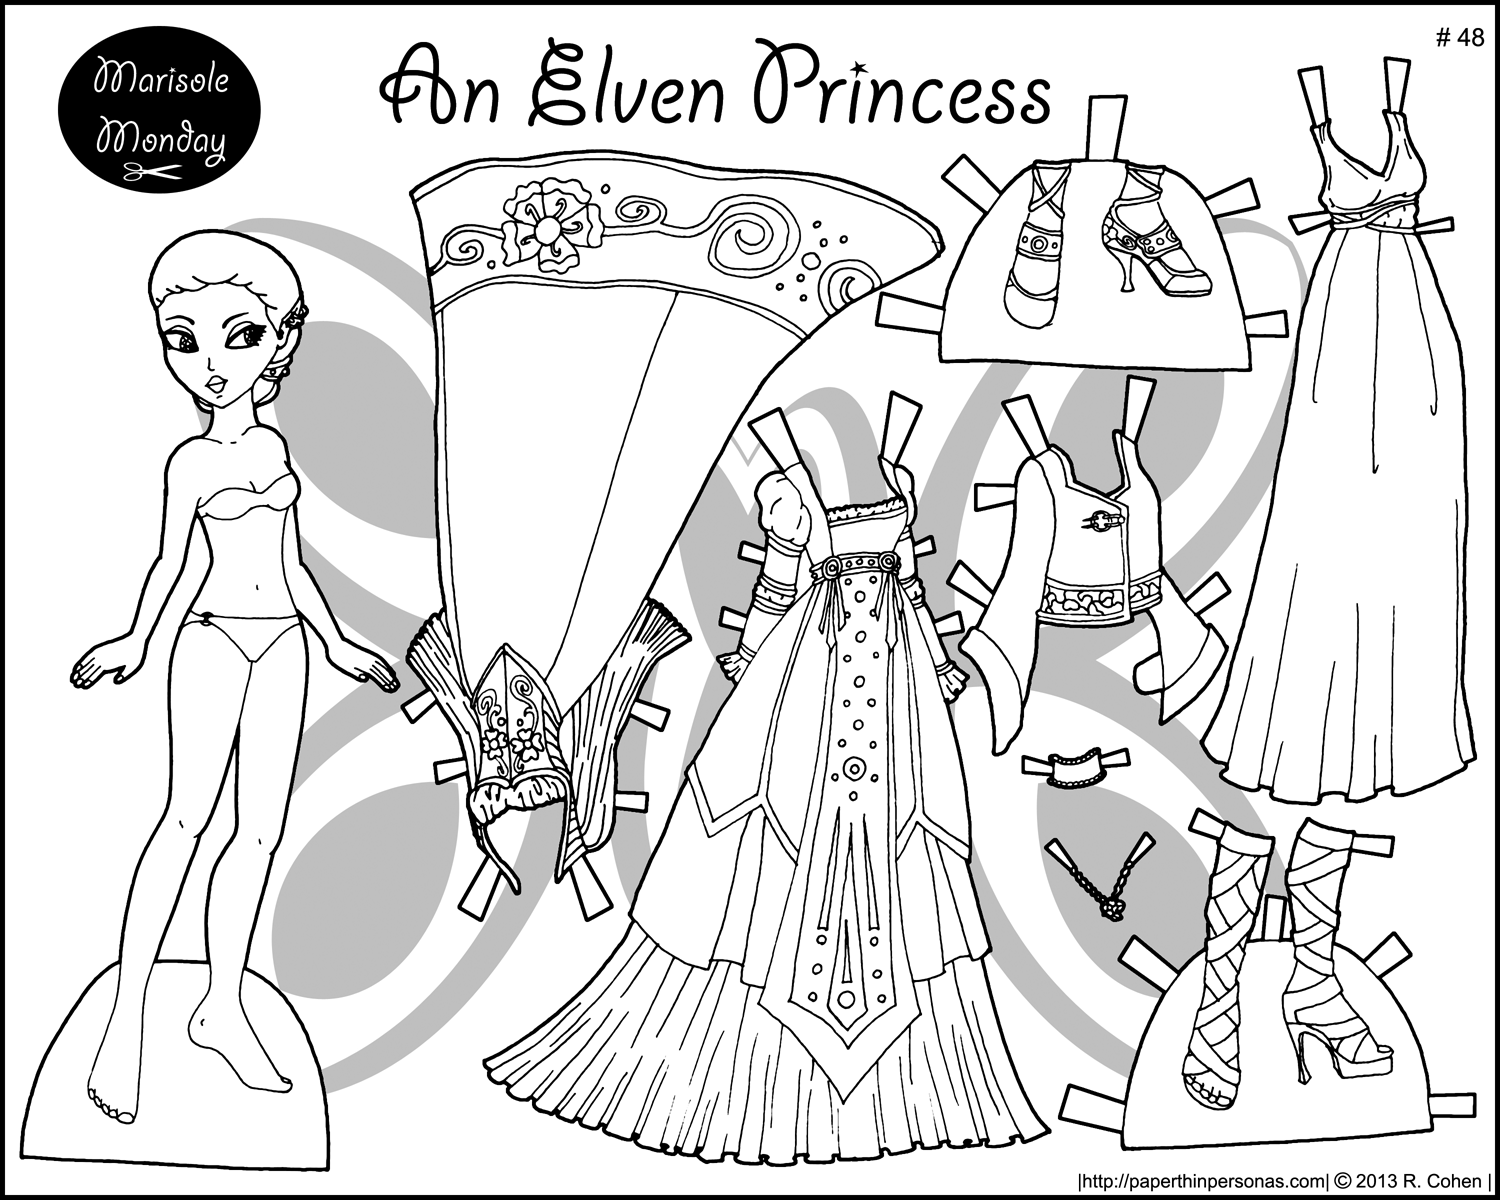 Four Princess Coloring Pages to